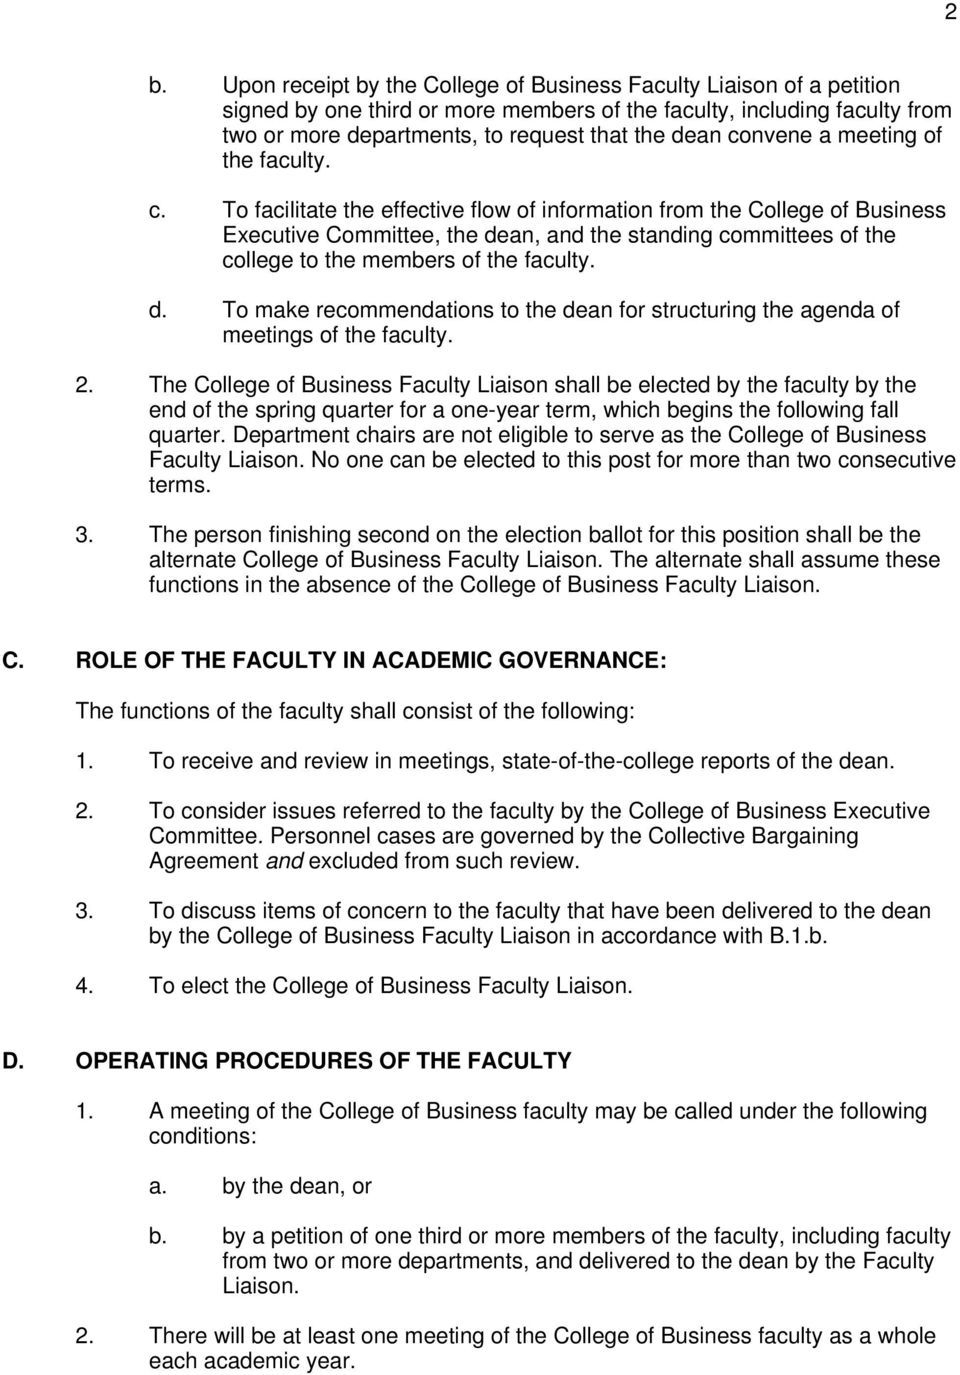 To facilitate the effective flow of information from the College of Business Executive Committee, the dean, and the standing committees of the college to the members of the faculty. d. To make recommendations to the dean for structuring the agenda of meetings of the faculty.